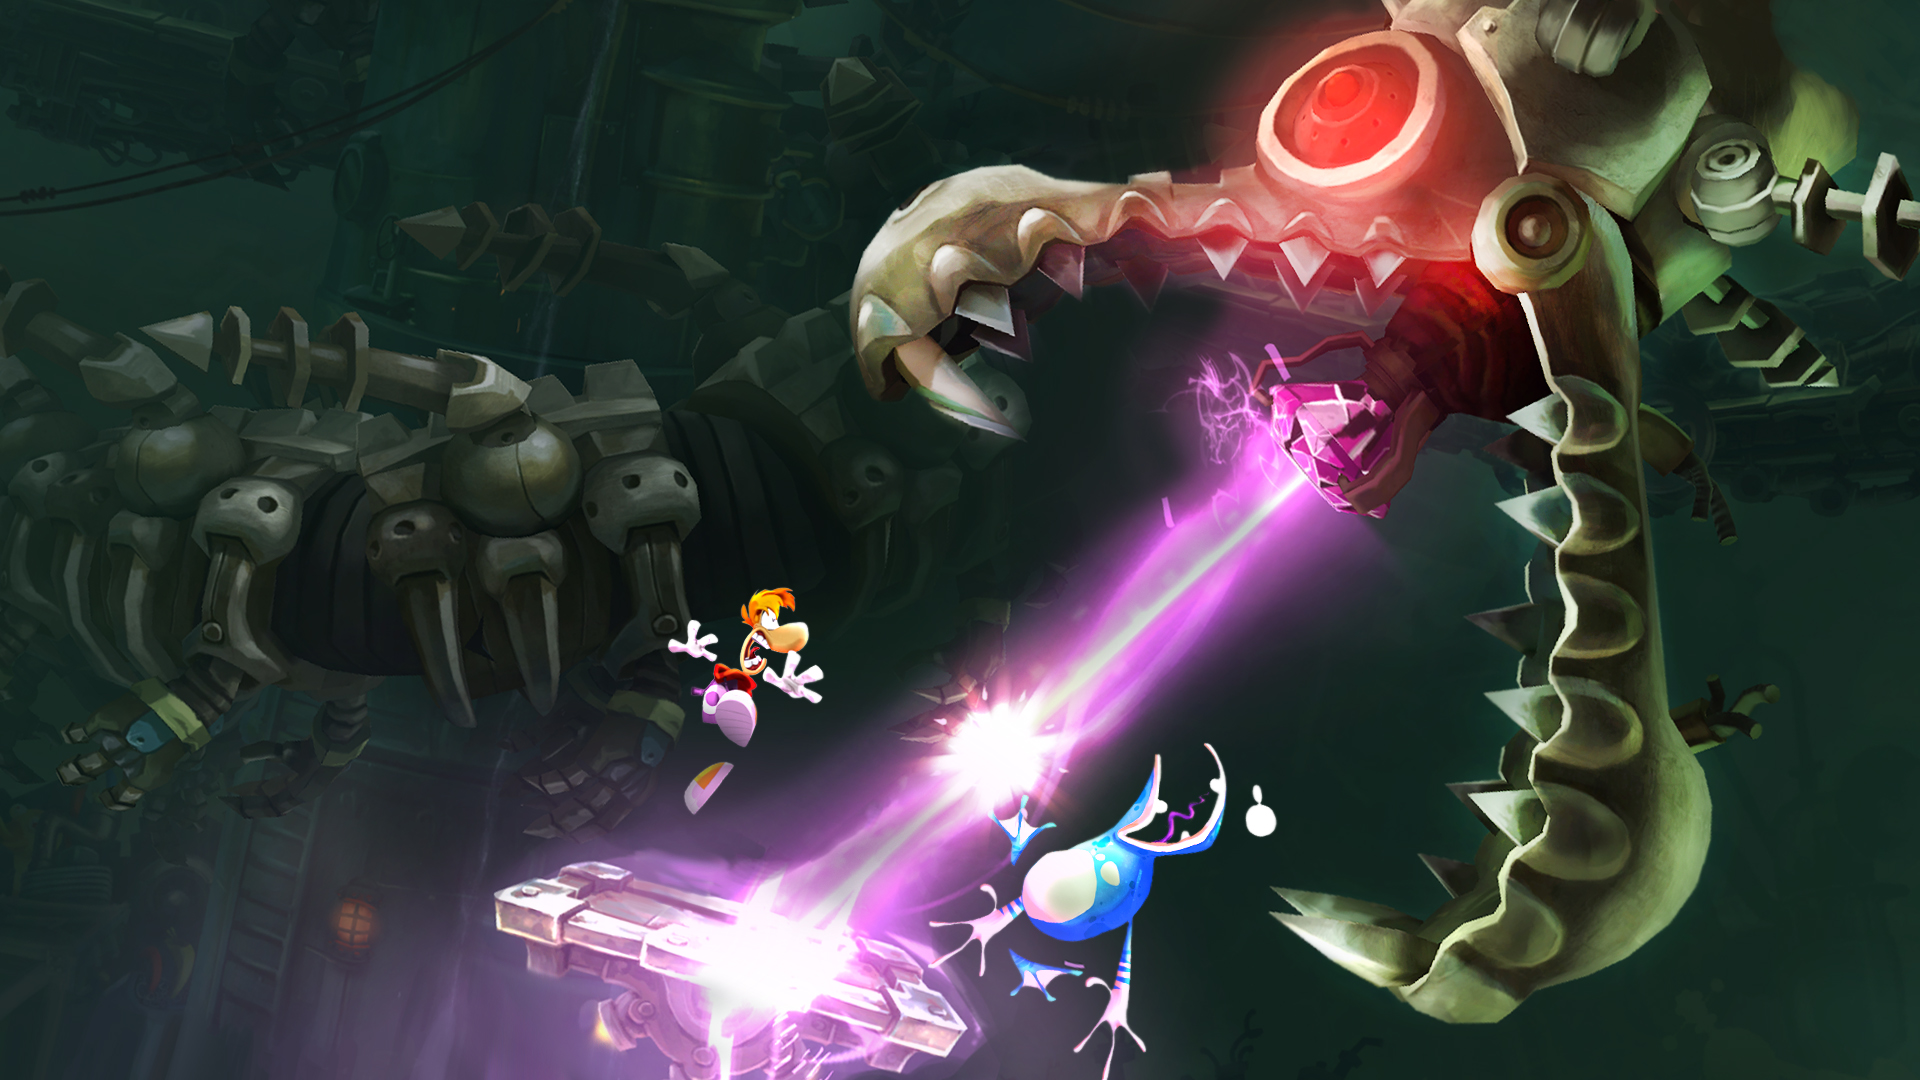 Rayman Legends on the Vita has Missing Content